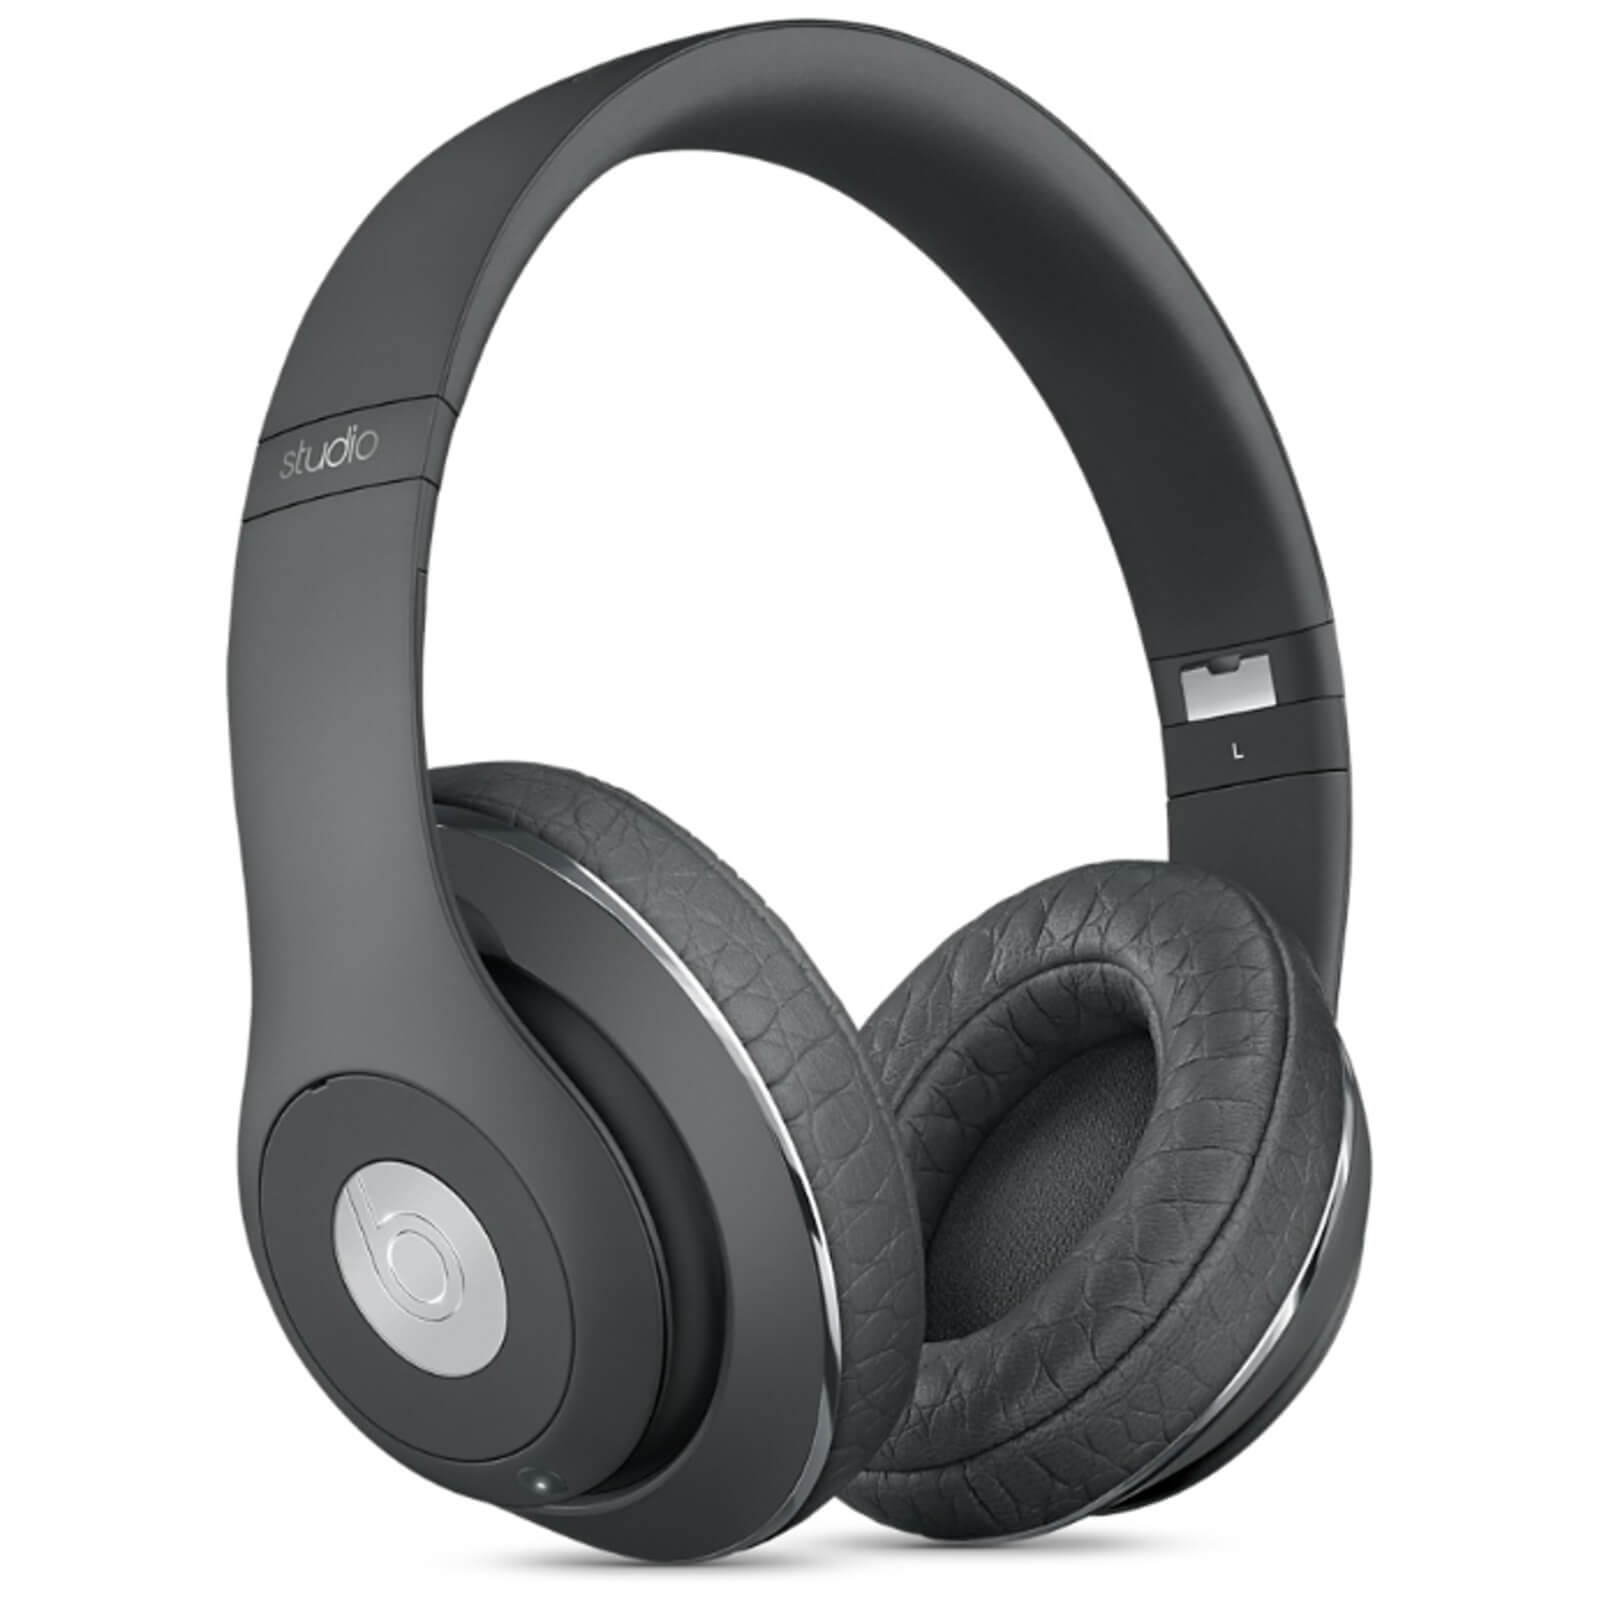 3b0067ac739 Beats by Dr. Dre Studio 2 Wireless Noise Cancelling Headphones - Alexander  Wang Limited Edition | IWOOT